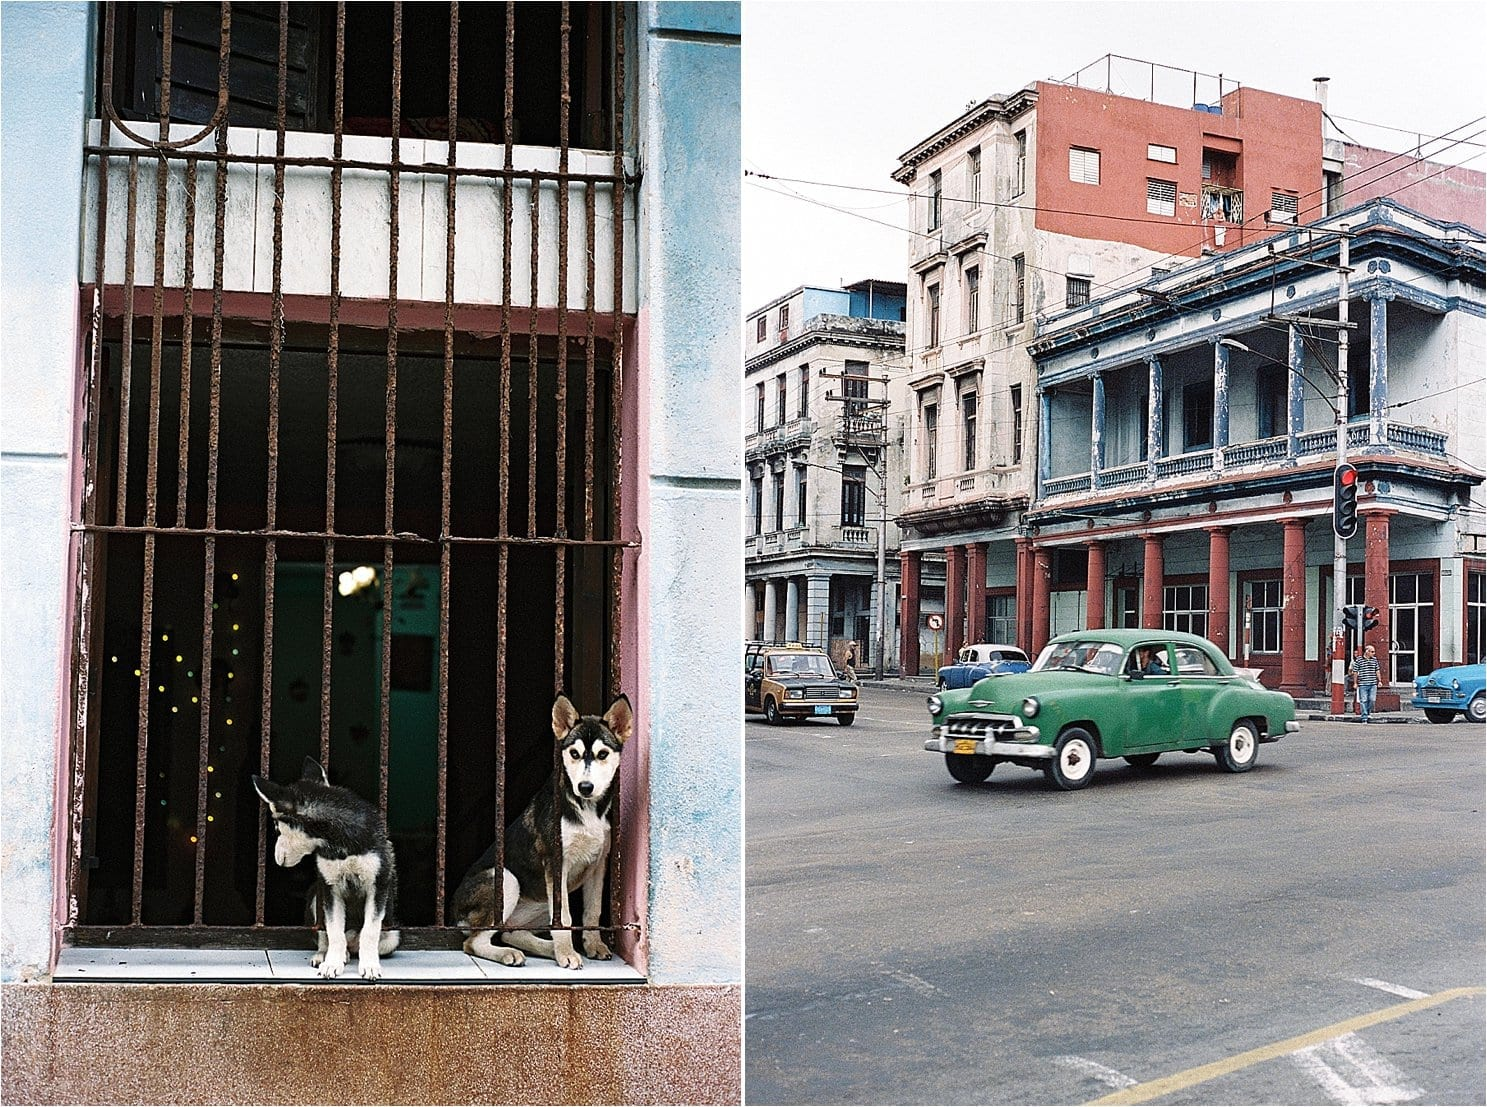 Travel photography by Younger Photography